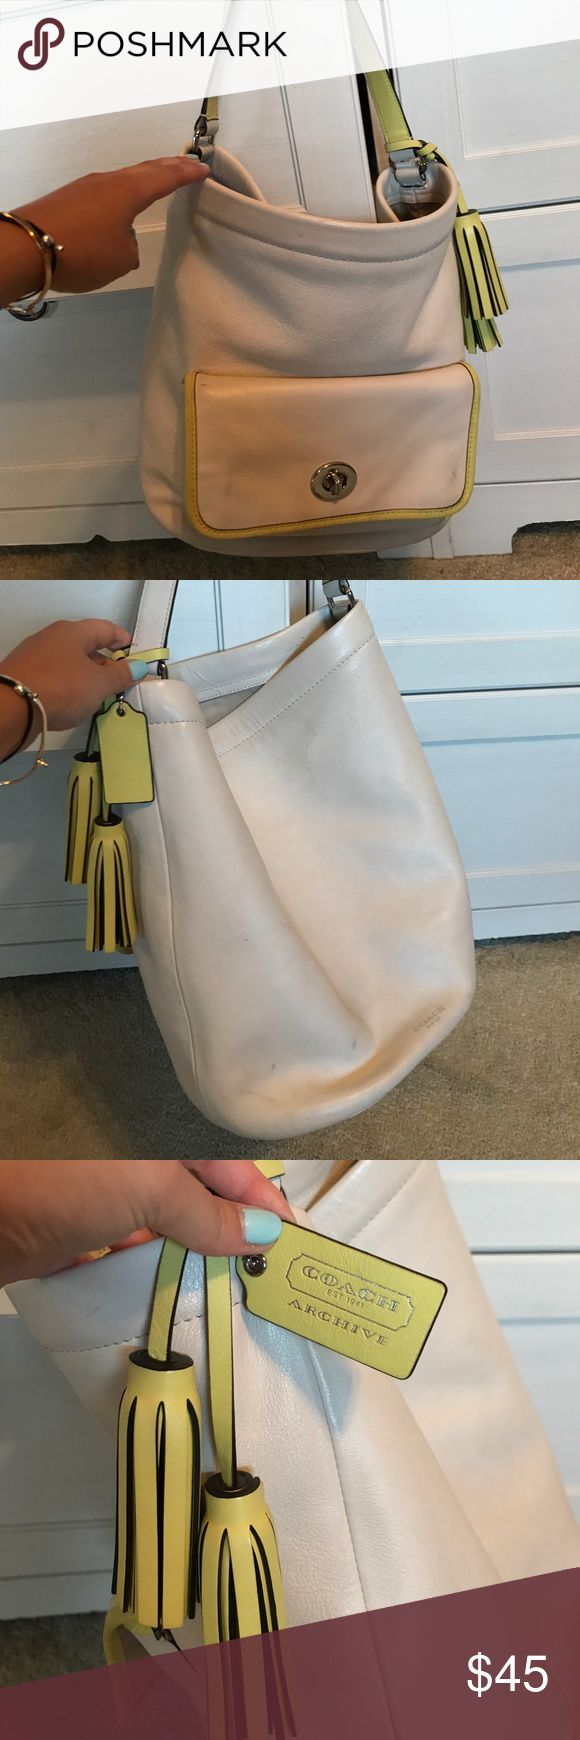 Coach hobo bag This is a white coach hobo bag. It has been used and has normal wear and markings. Many black markings on bag and on bottoms. This bag also has lime green detailing. There is a pocket on the front of the bag big enough to fit a wallet. Coach Bags Hobos